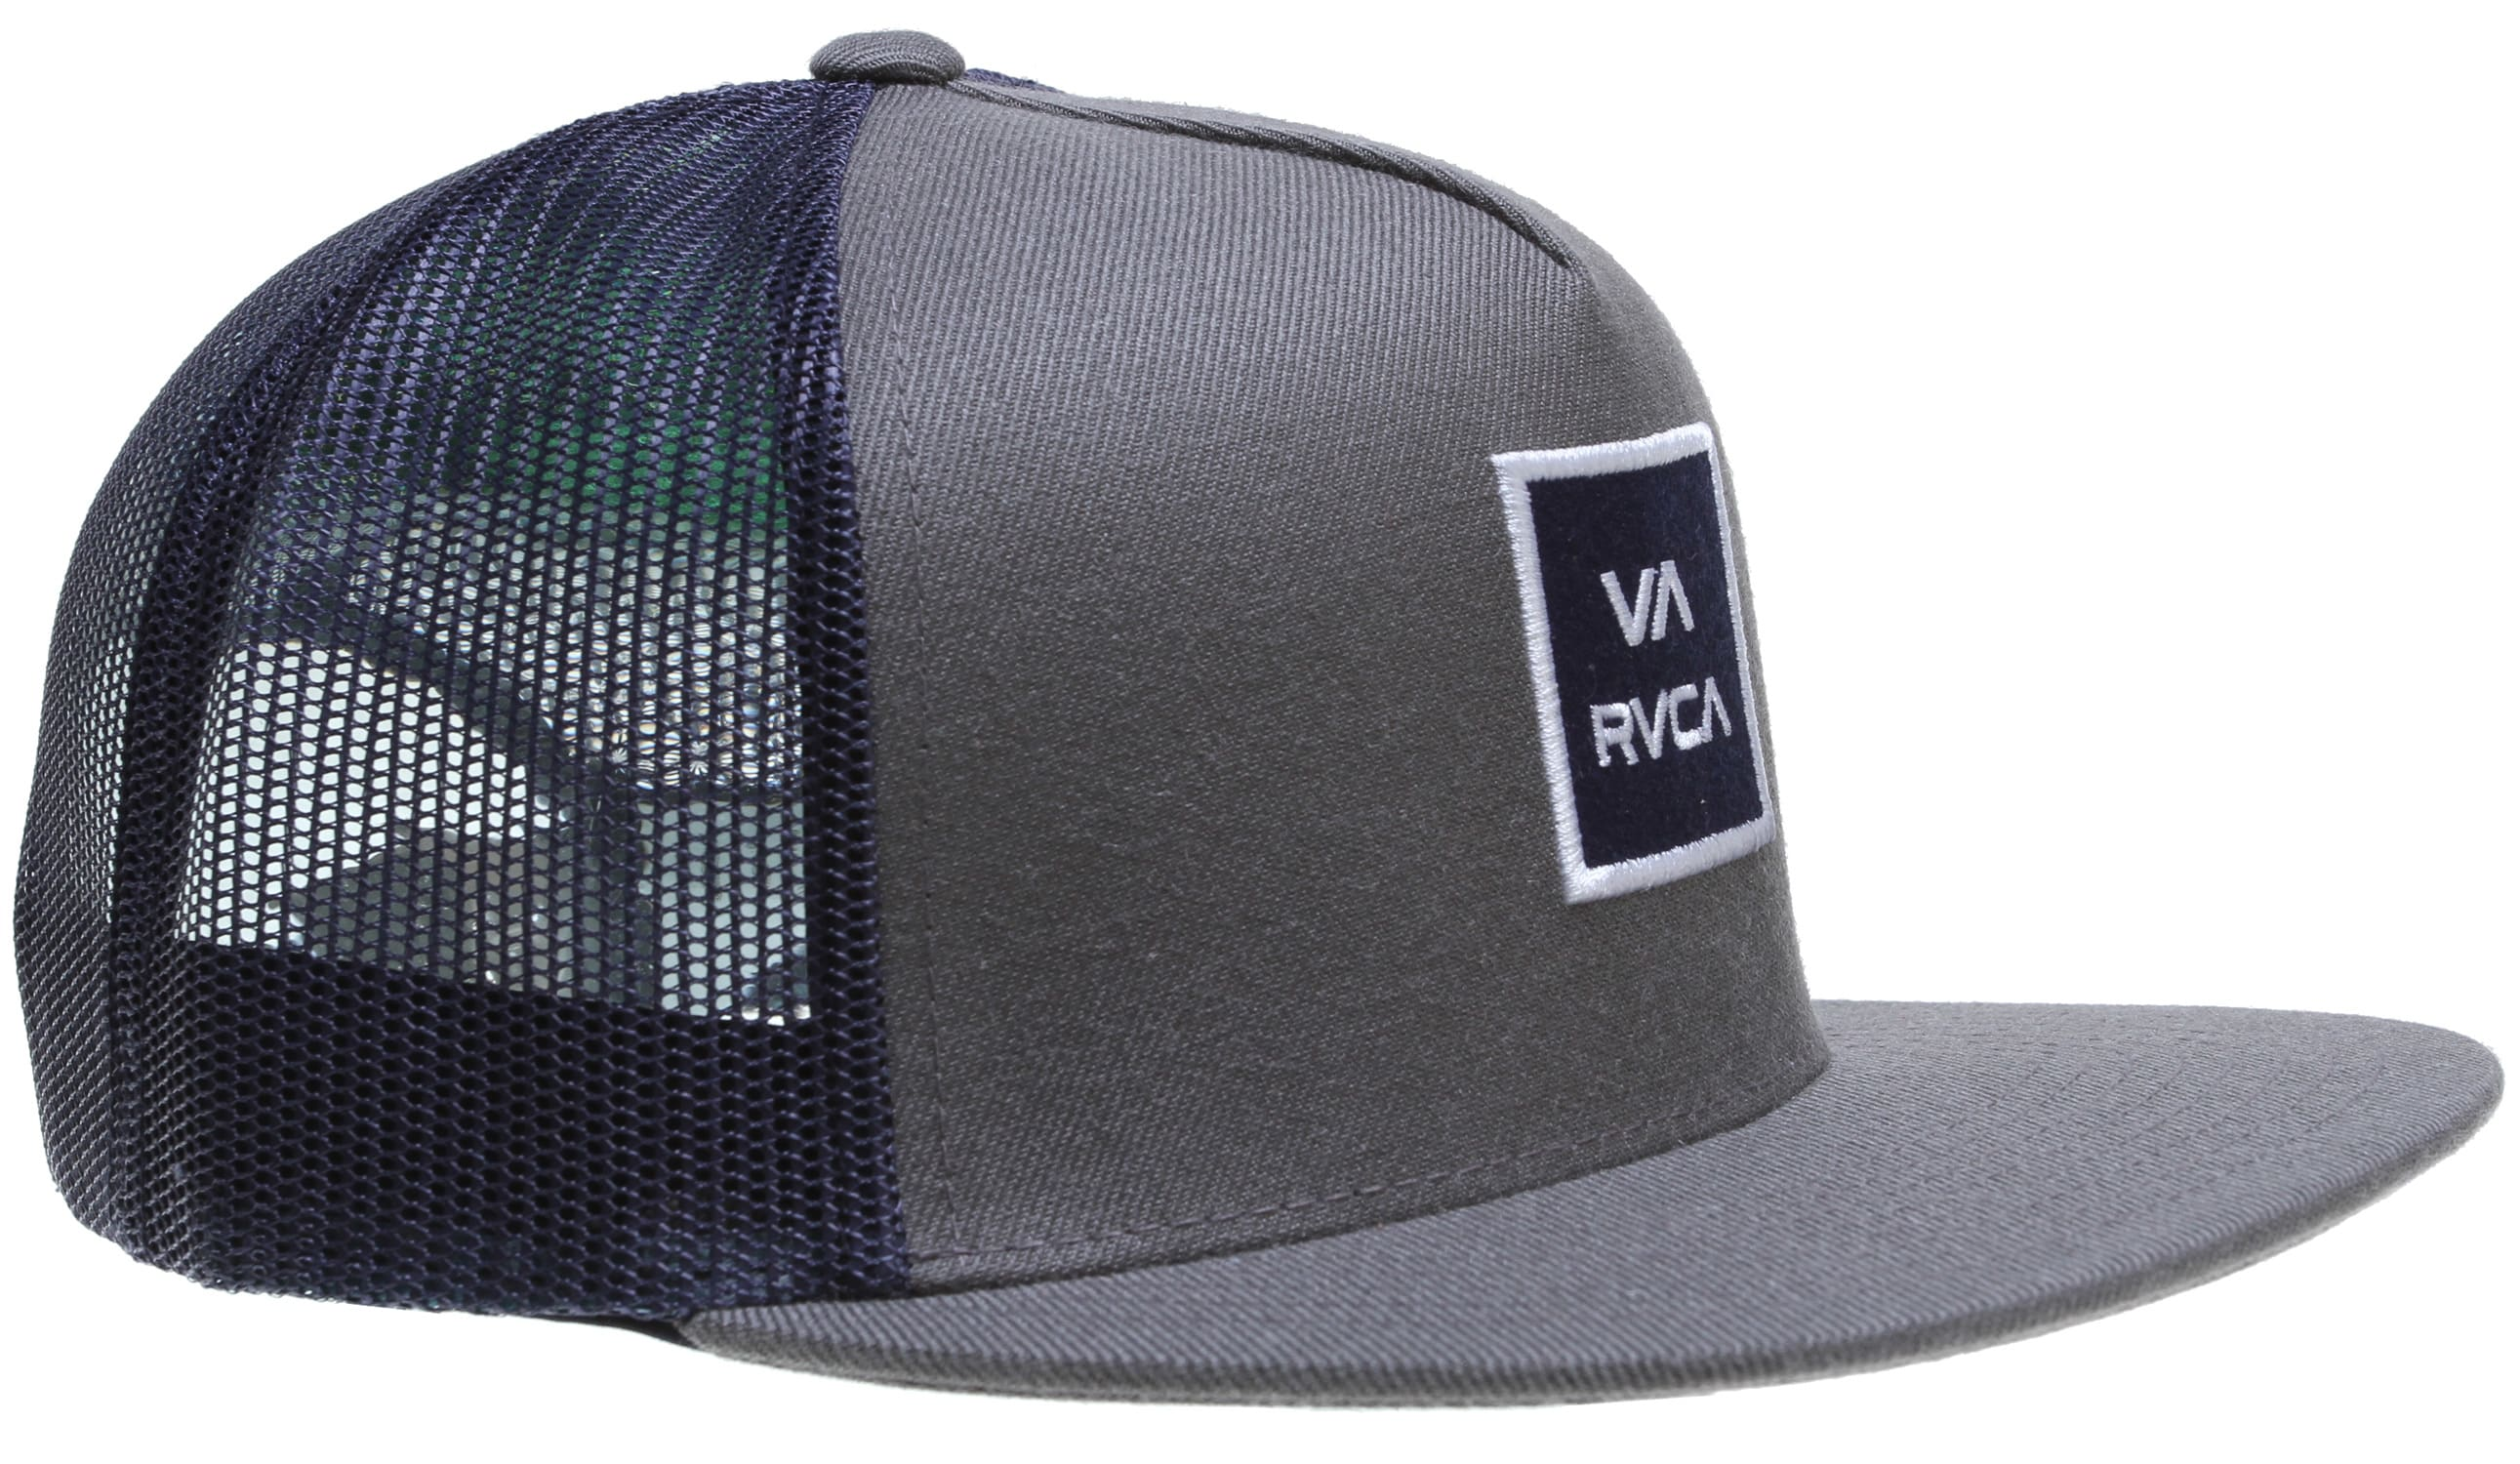 on sale 37d79 3039b ... denmark rvca va all the way trucker cap thumbnail 2 cc588 6297f